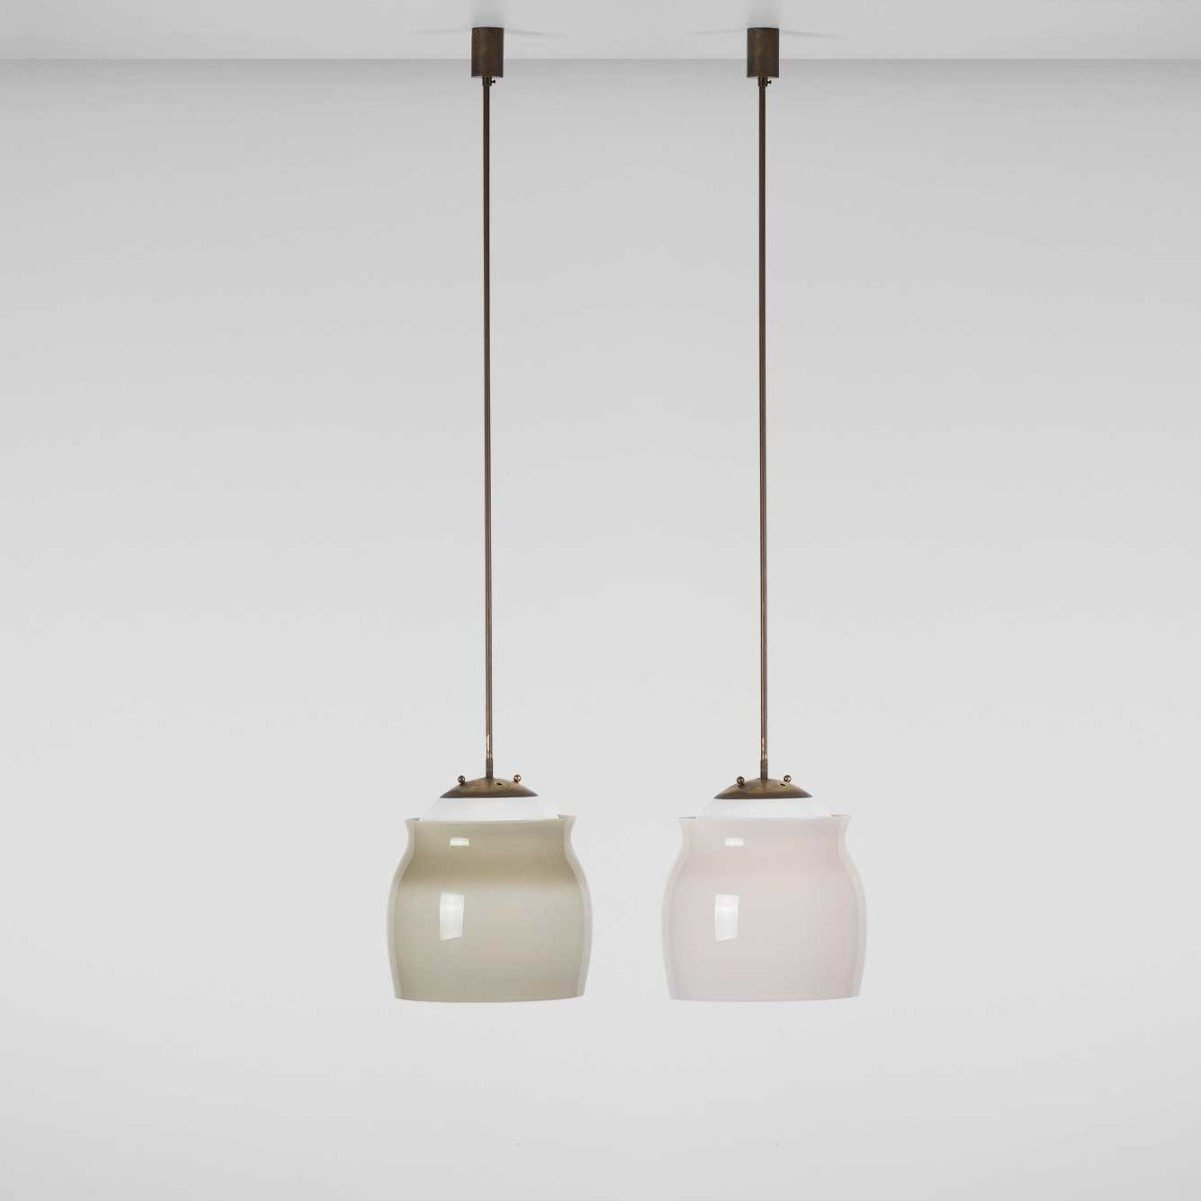 Franco Albini |                                  Ceiling light model 4023